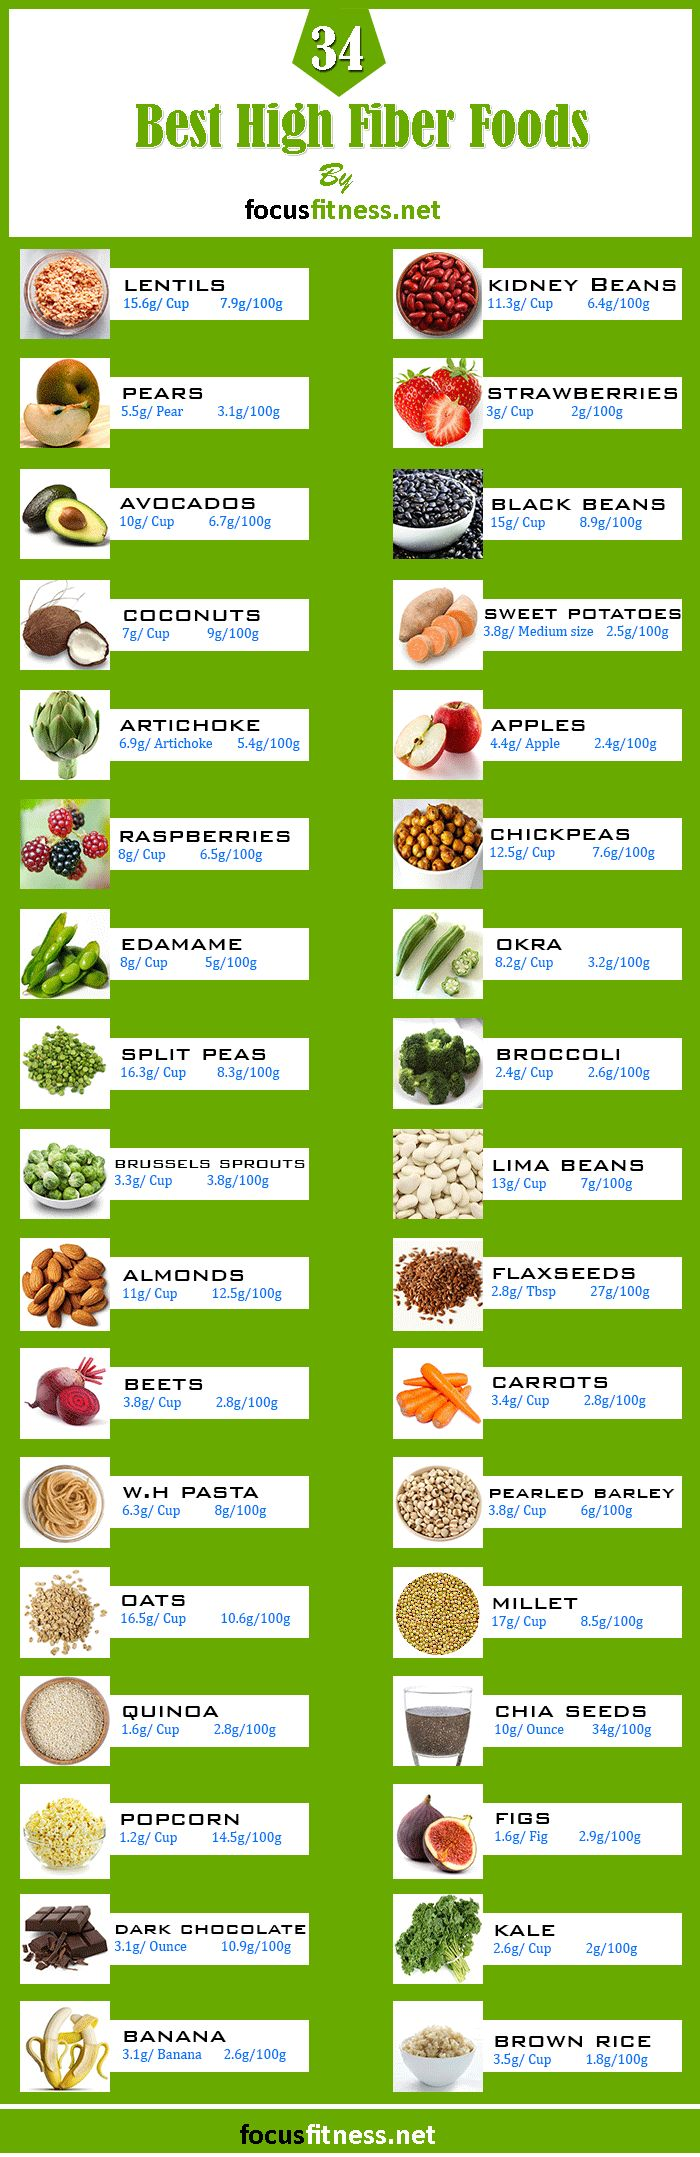 An infographic listing the 34 best high-fiber foods, all plant based, including fruits, vegetables, grains, and legumes.